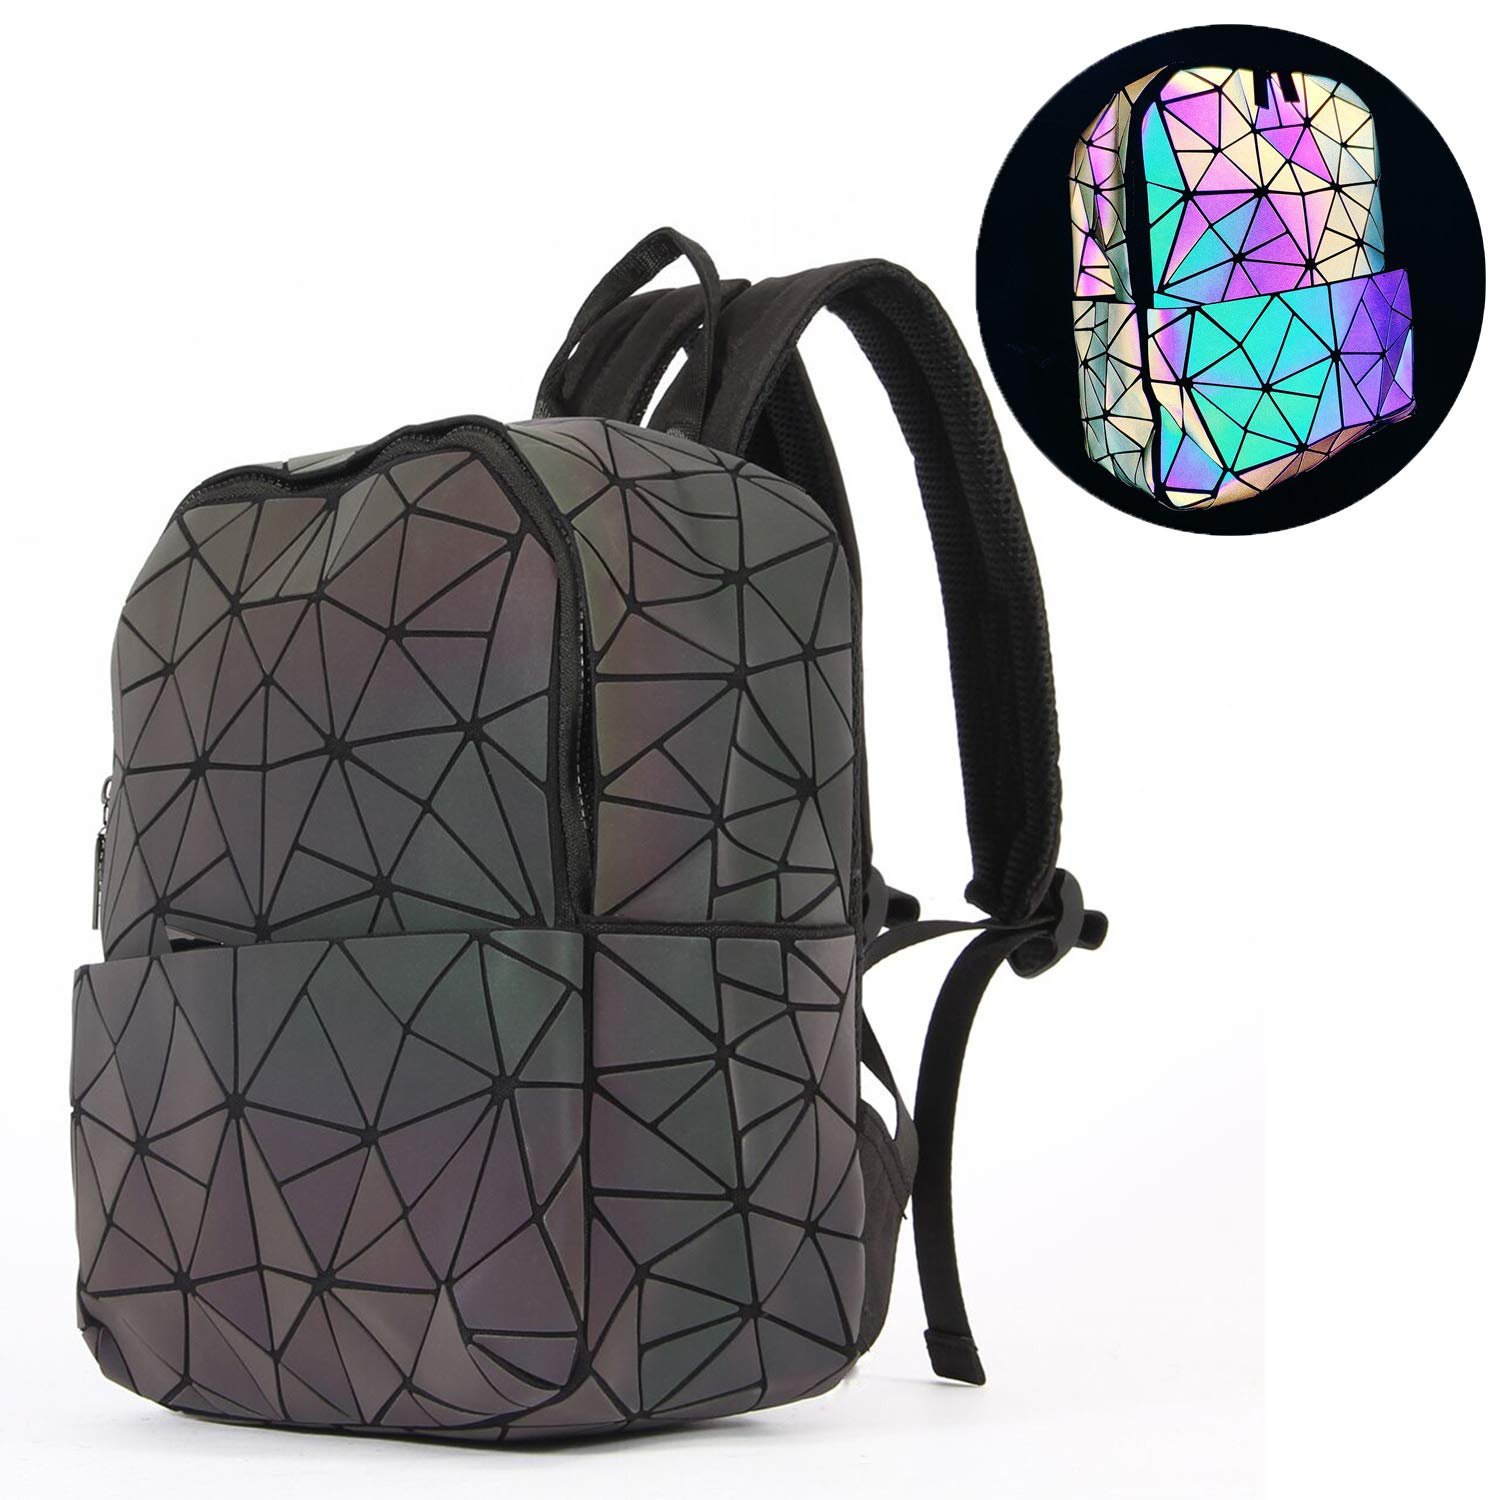 Harlermoon Geometric Luminous Holographic Purses and Handbags Flash Reflactive Tote for Women … (Small Backpack)